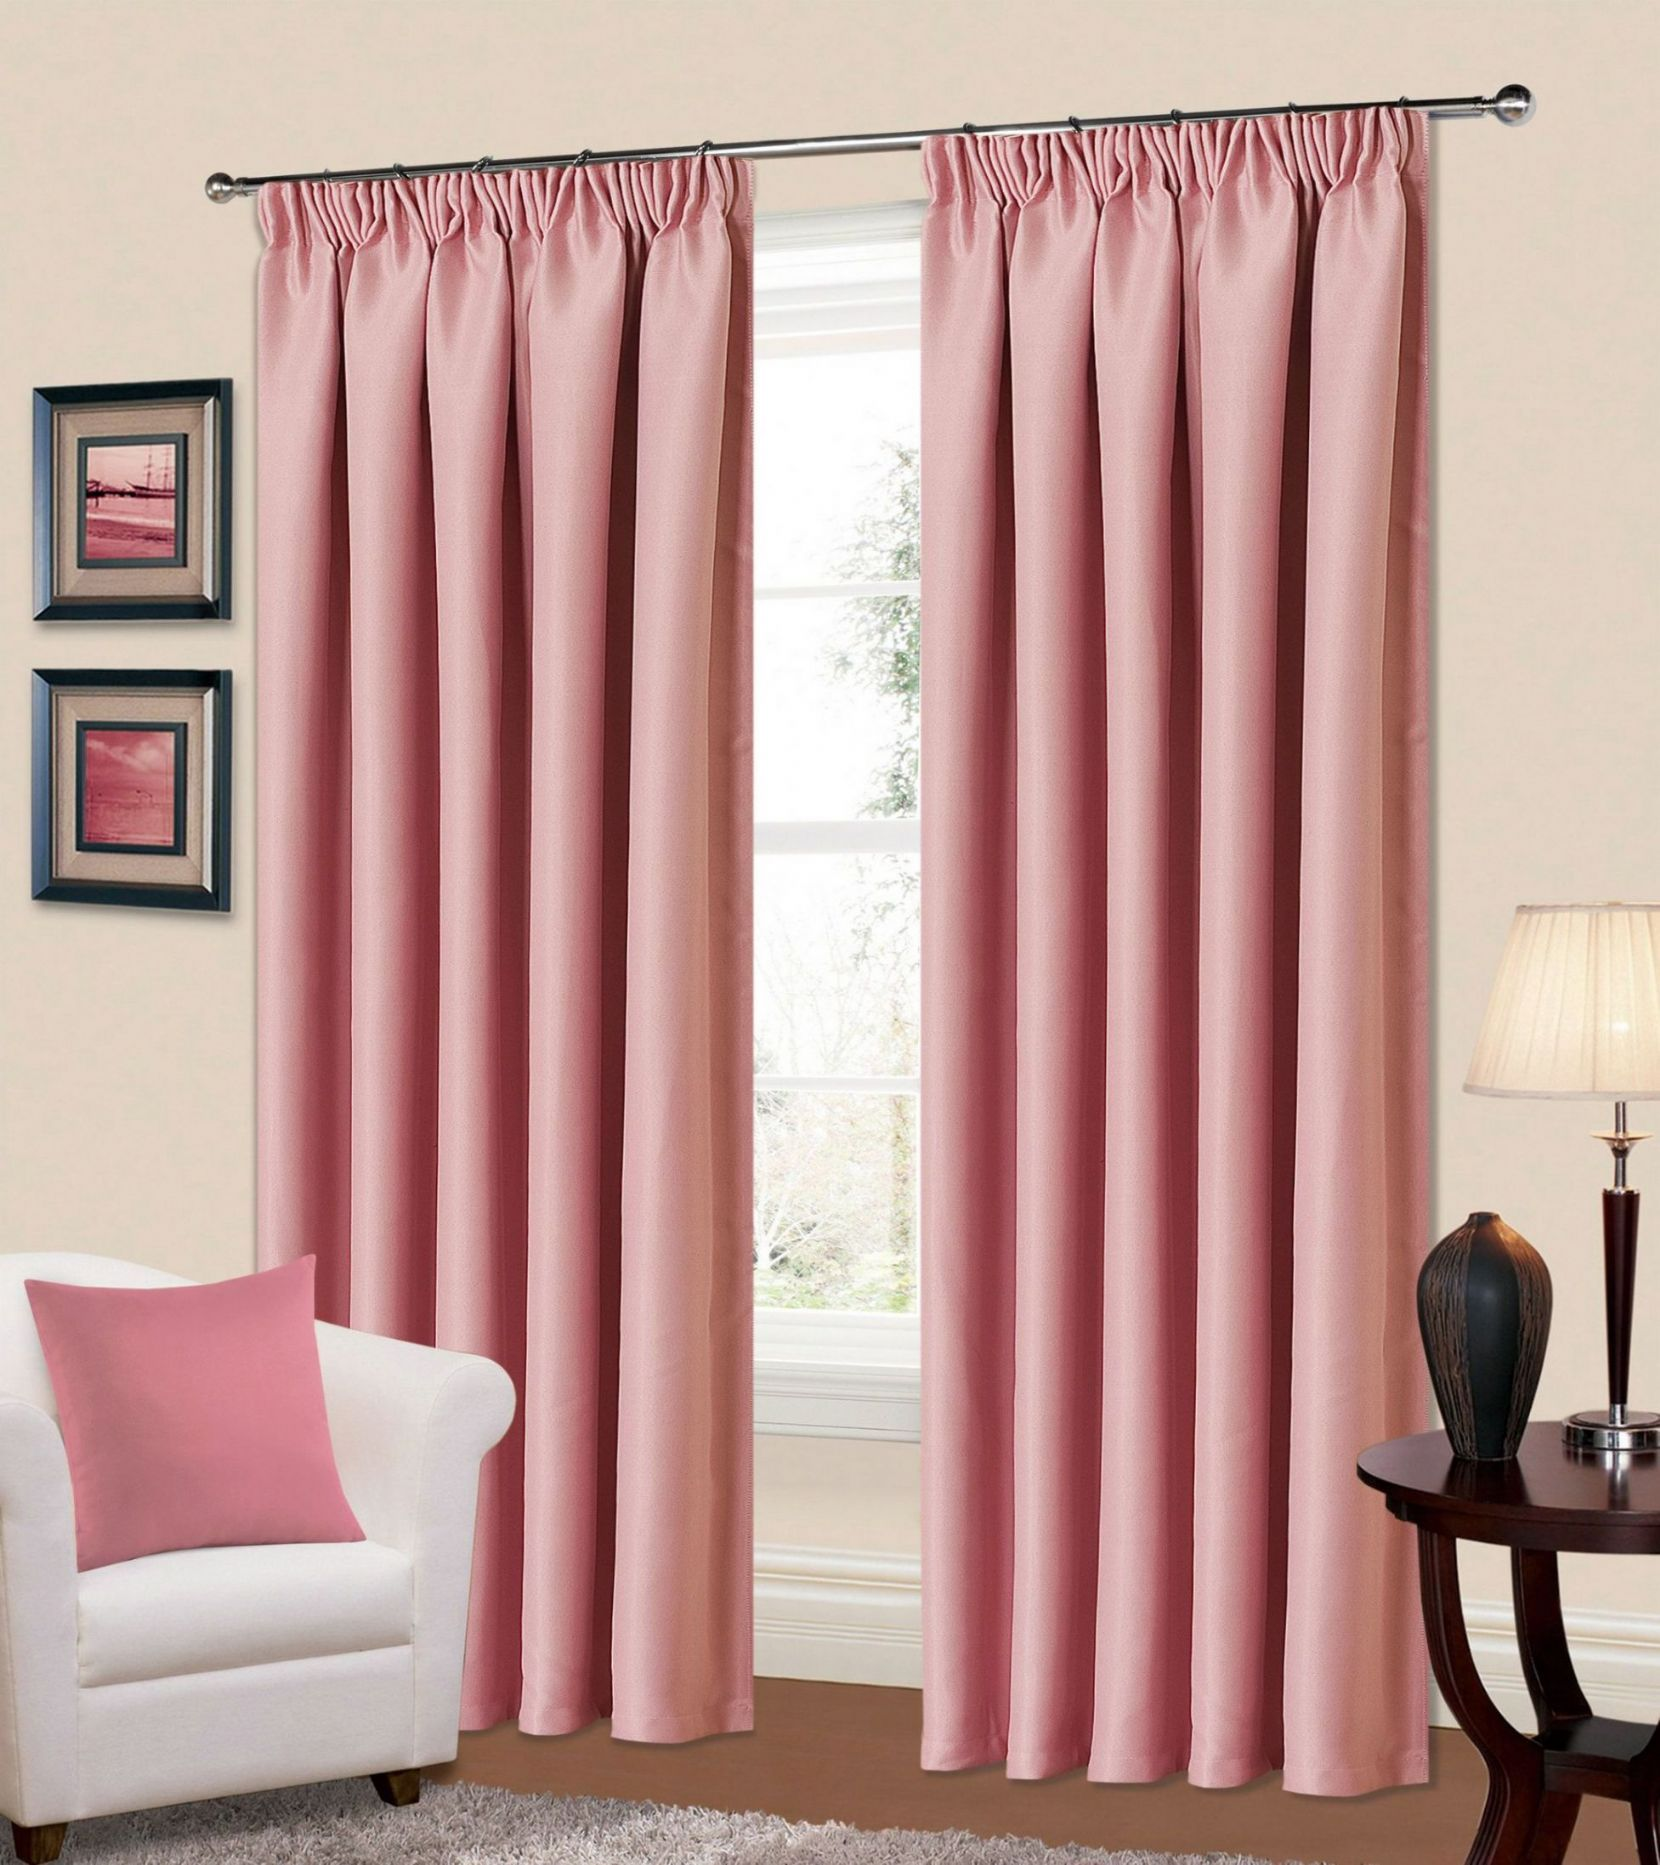 Bedroom Curtains Pencil Pleat